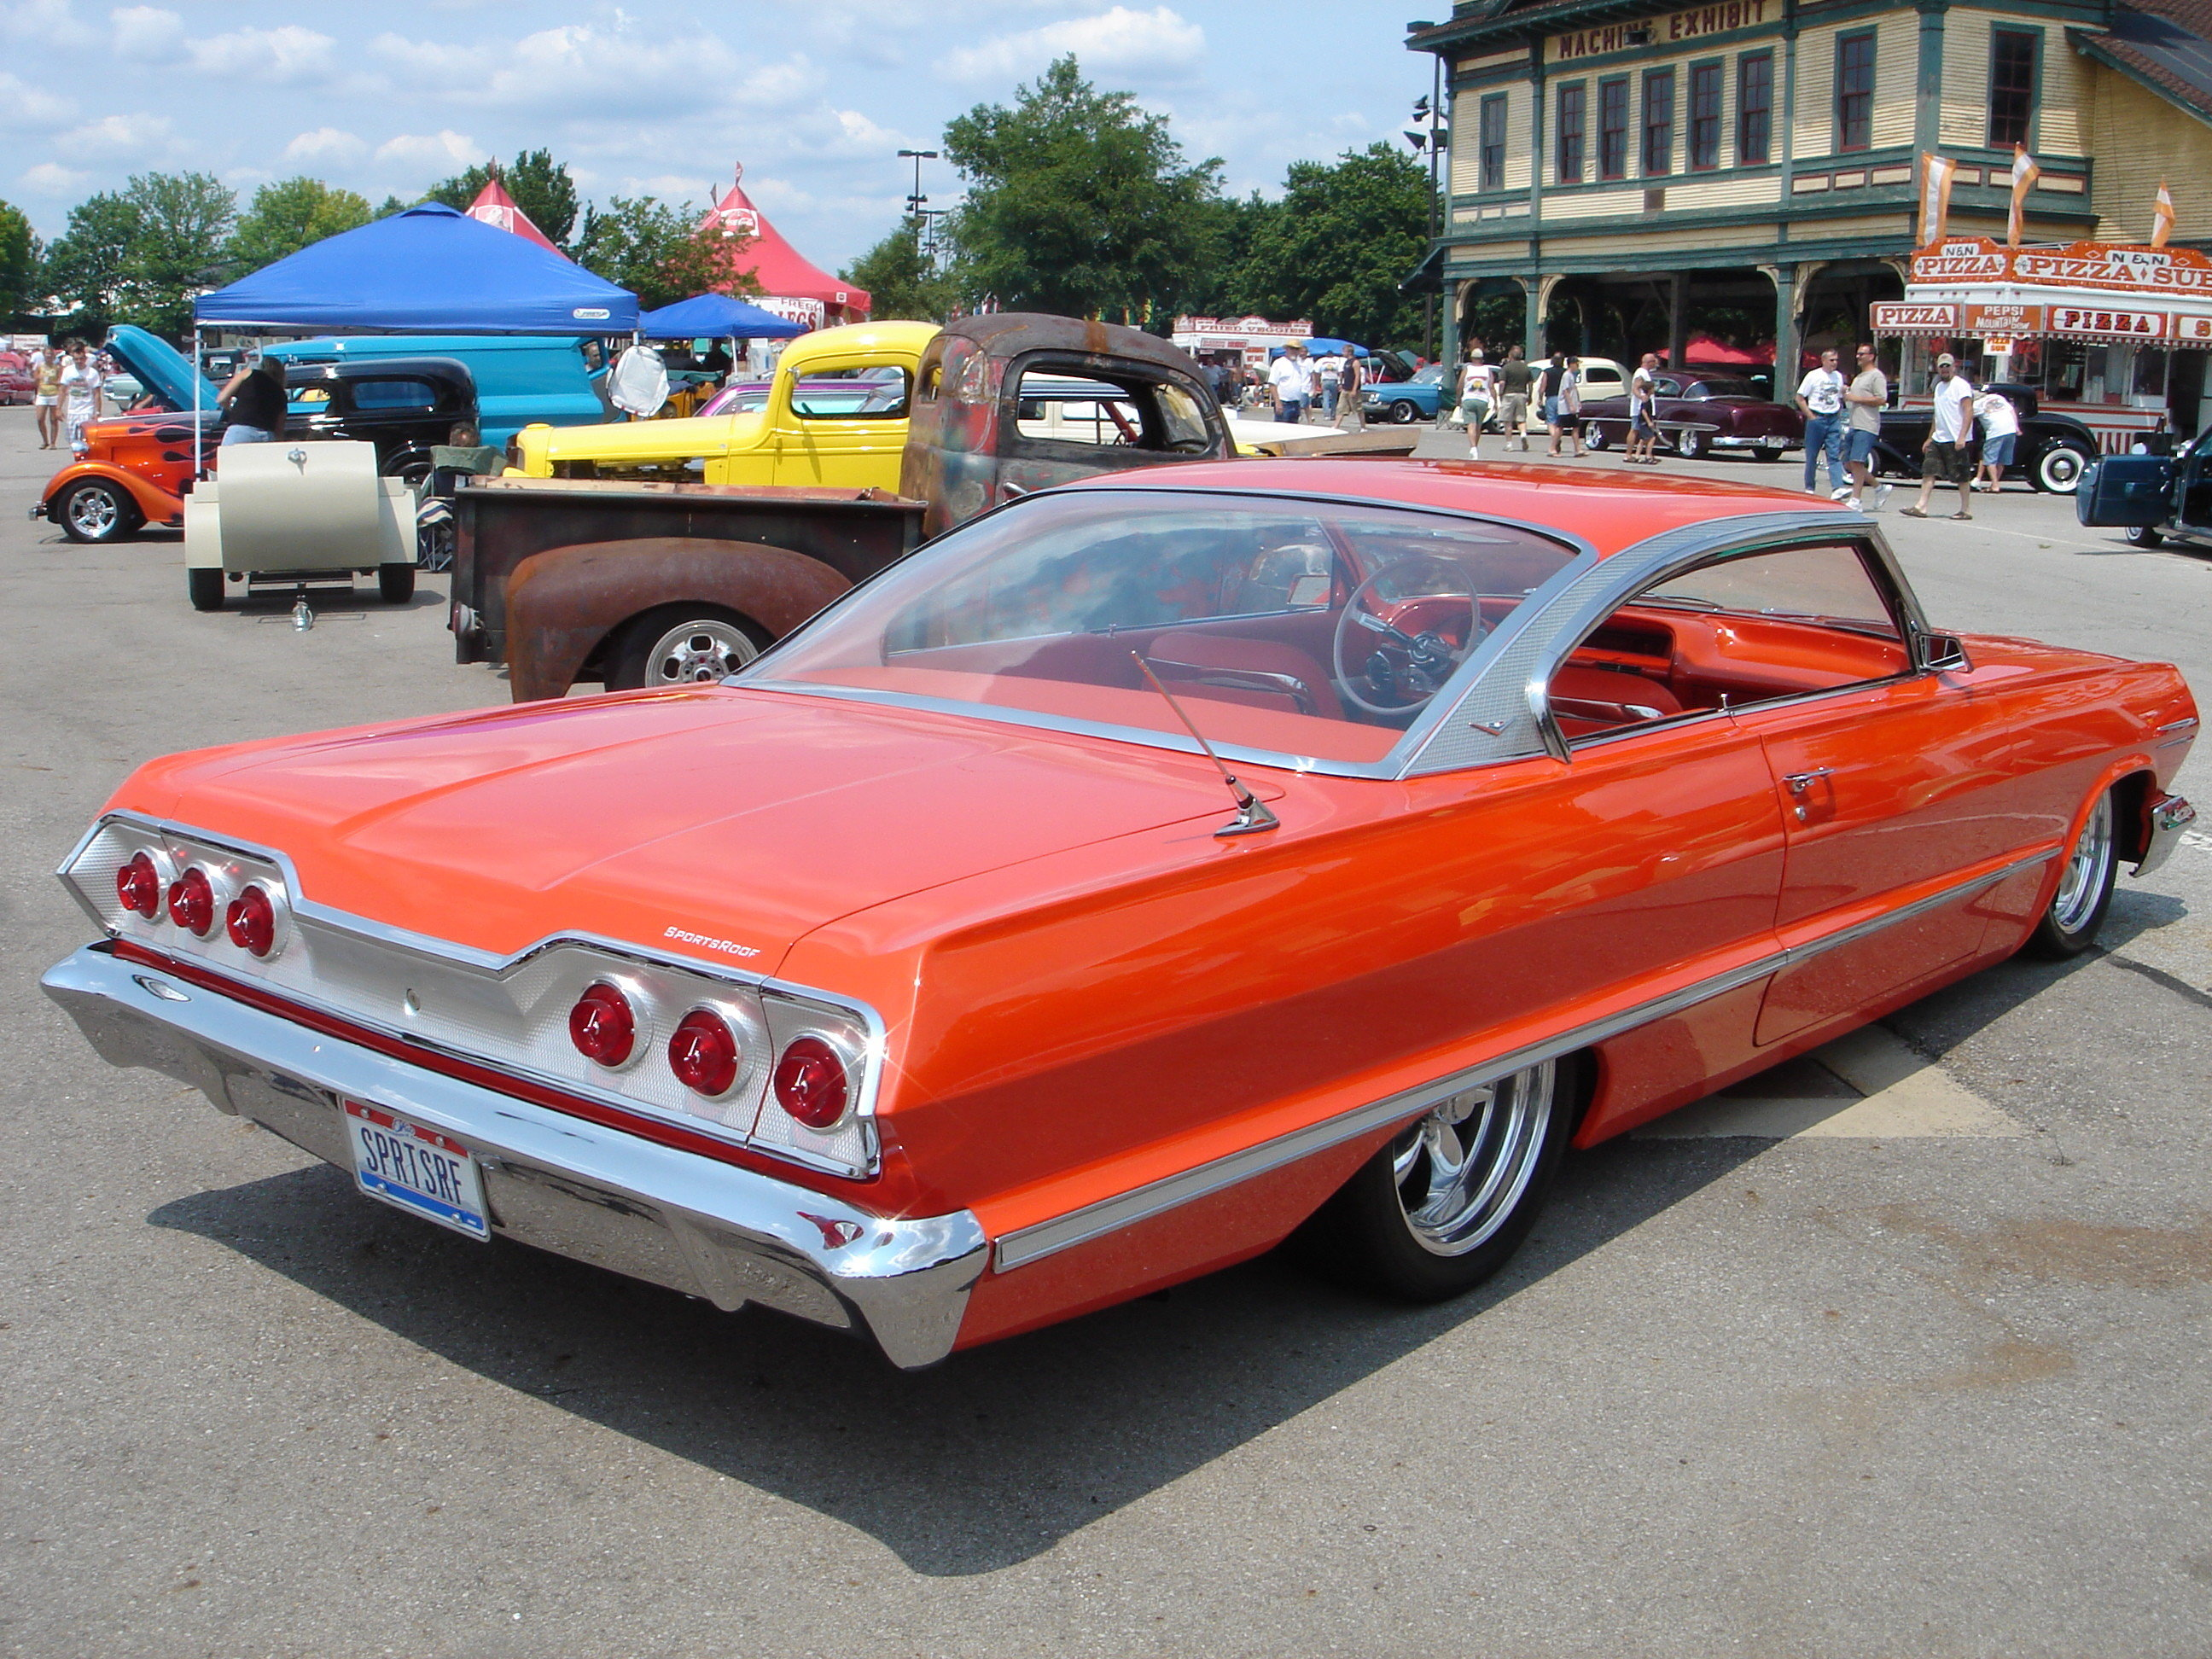 custom orange 1963 impala ss with heavy modifications. Black Bedroom Furniture Sets. Home Design Ideas